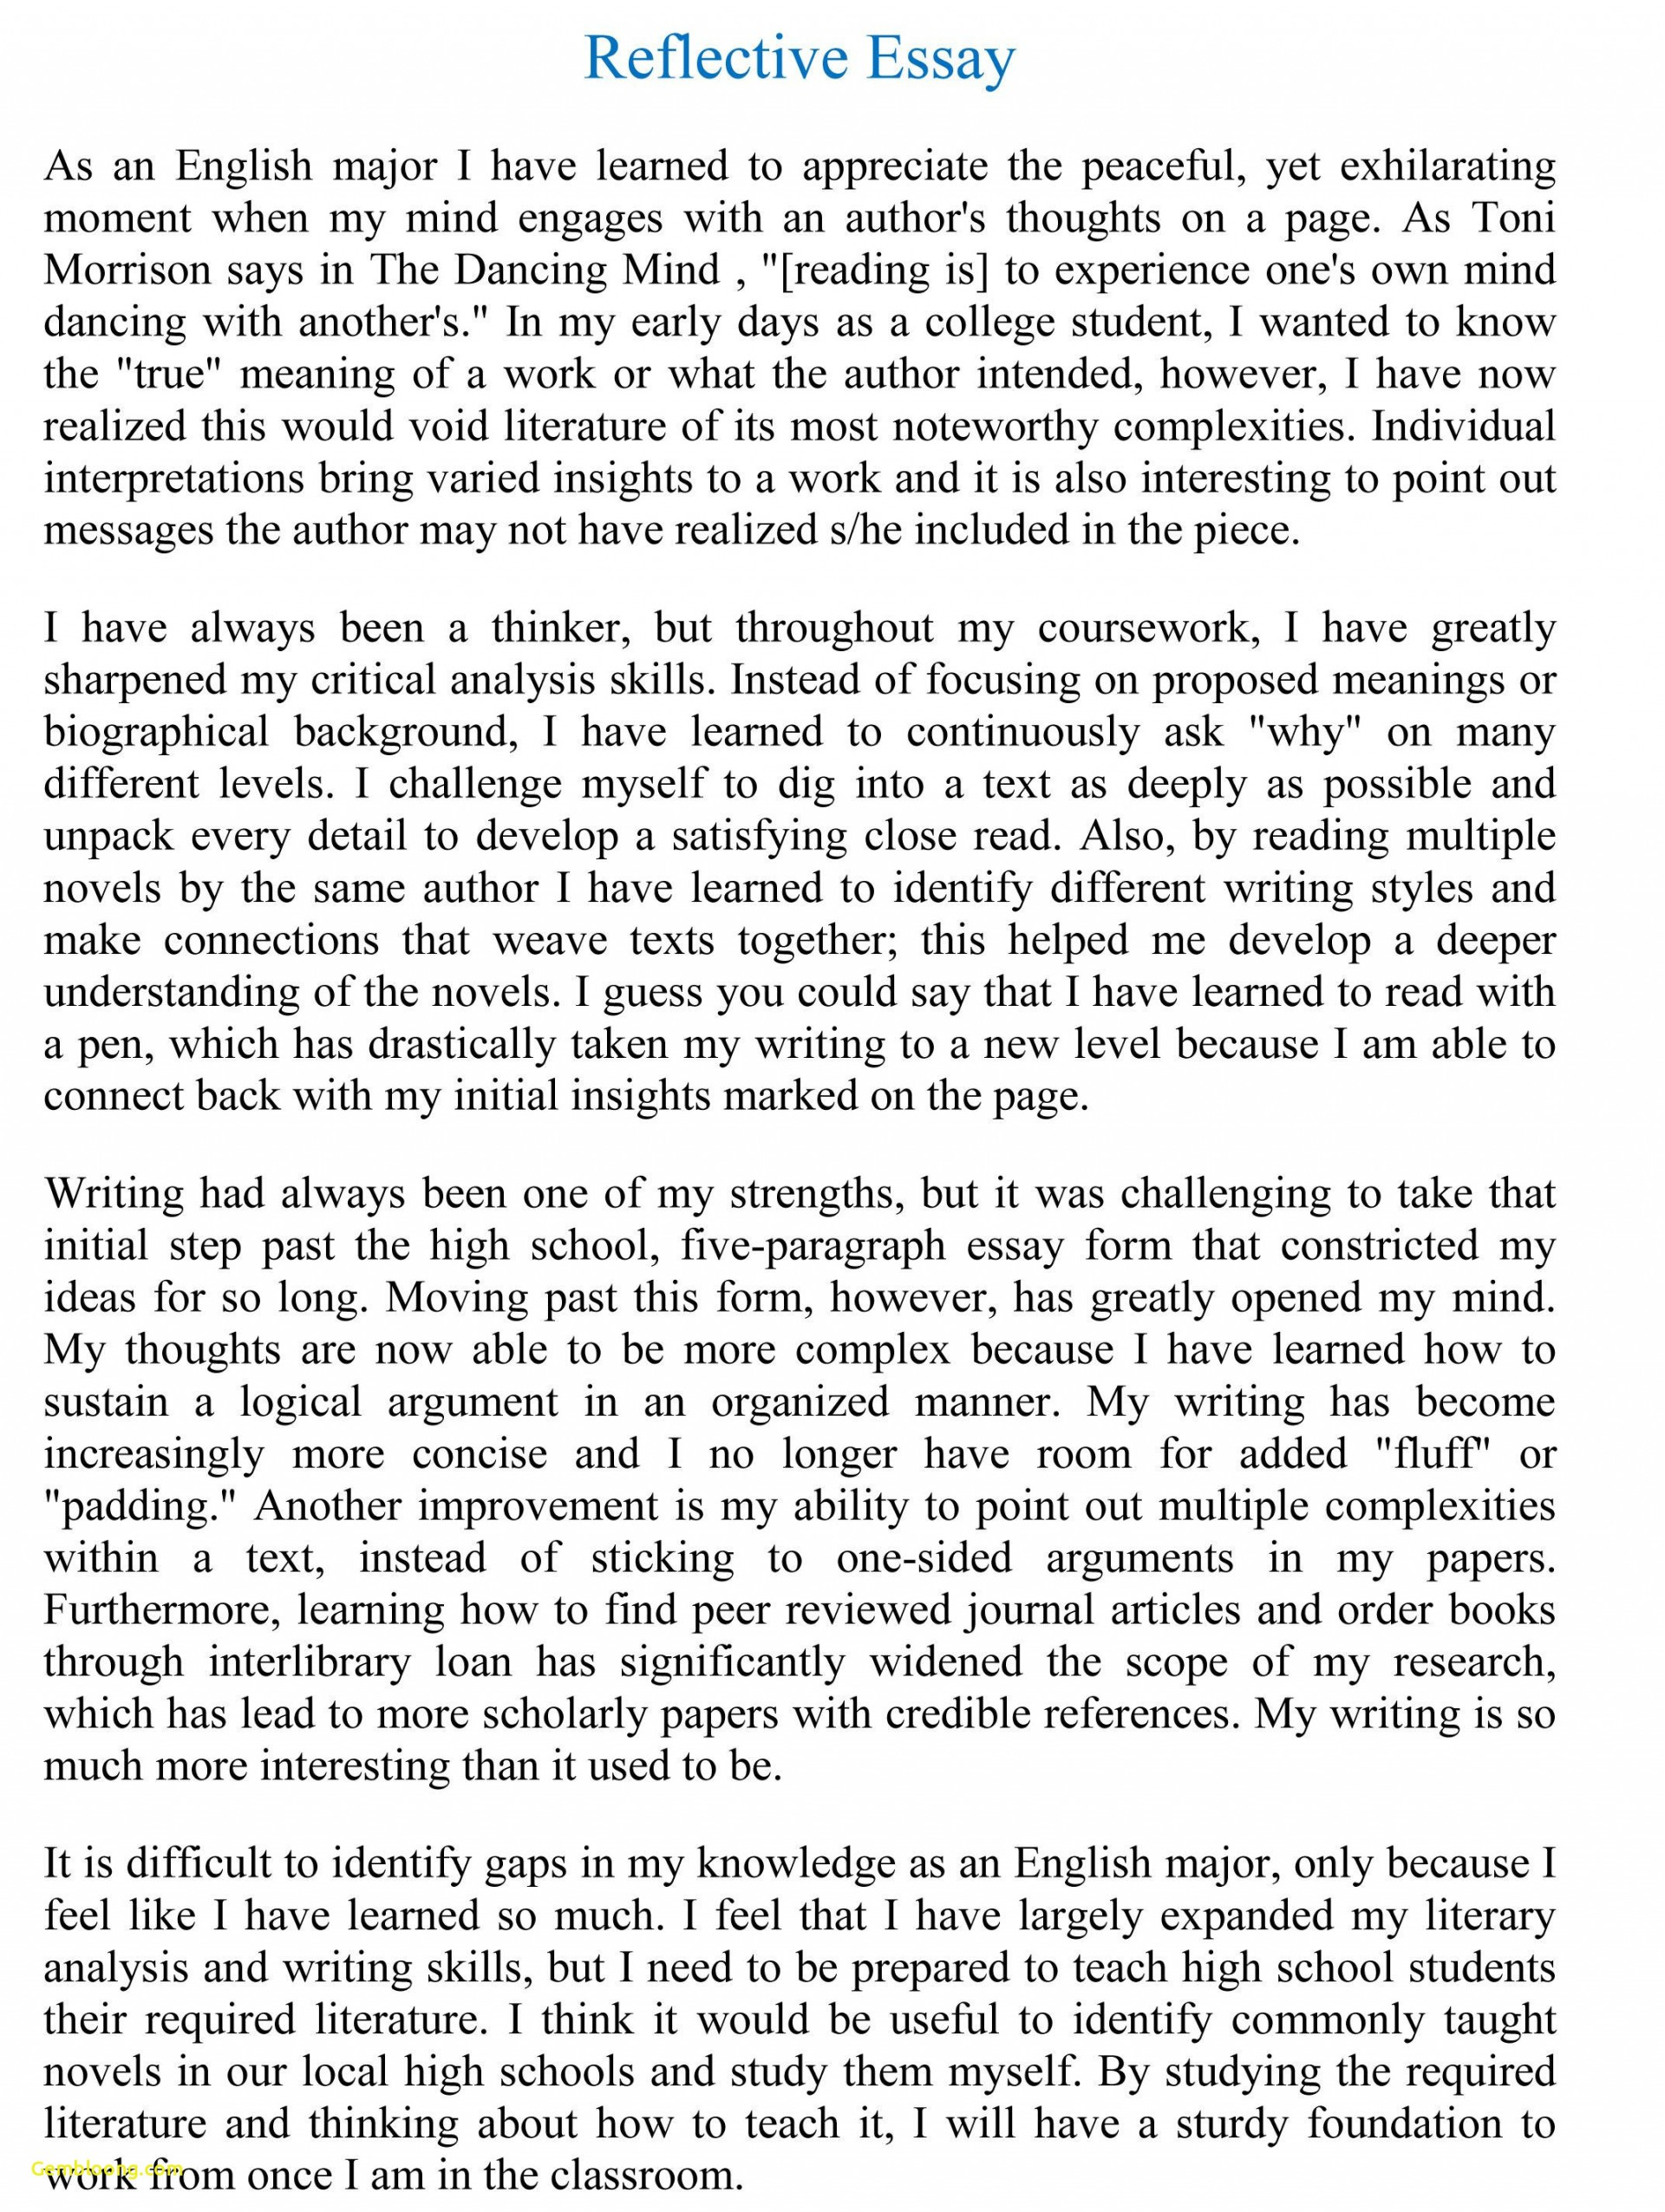 014 Essay Example Reflective Format Unique Writing Reflection Persuasive Phenomenal Self Assessment Paper Apa 1920